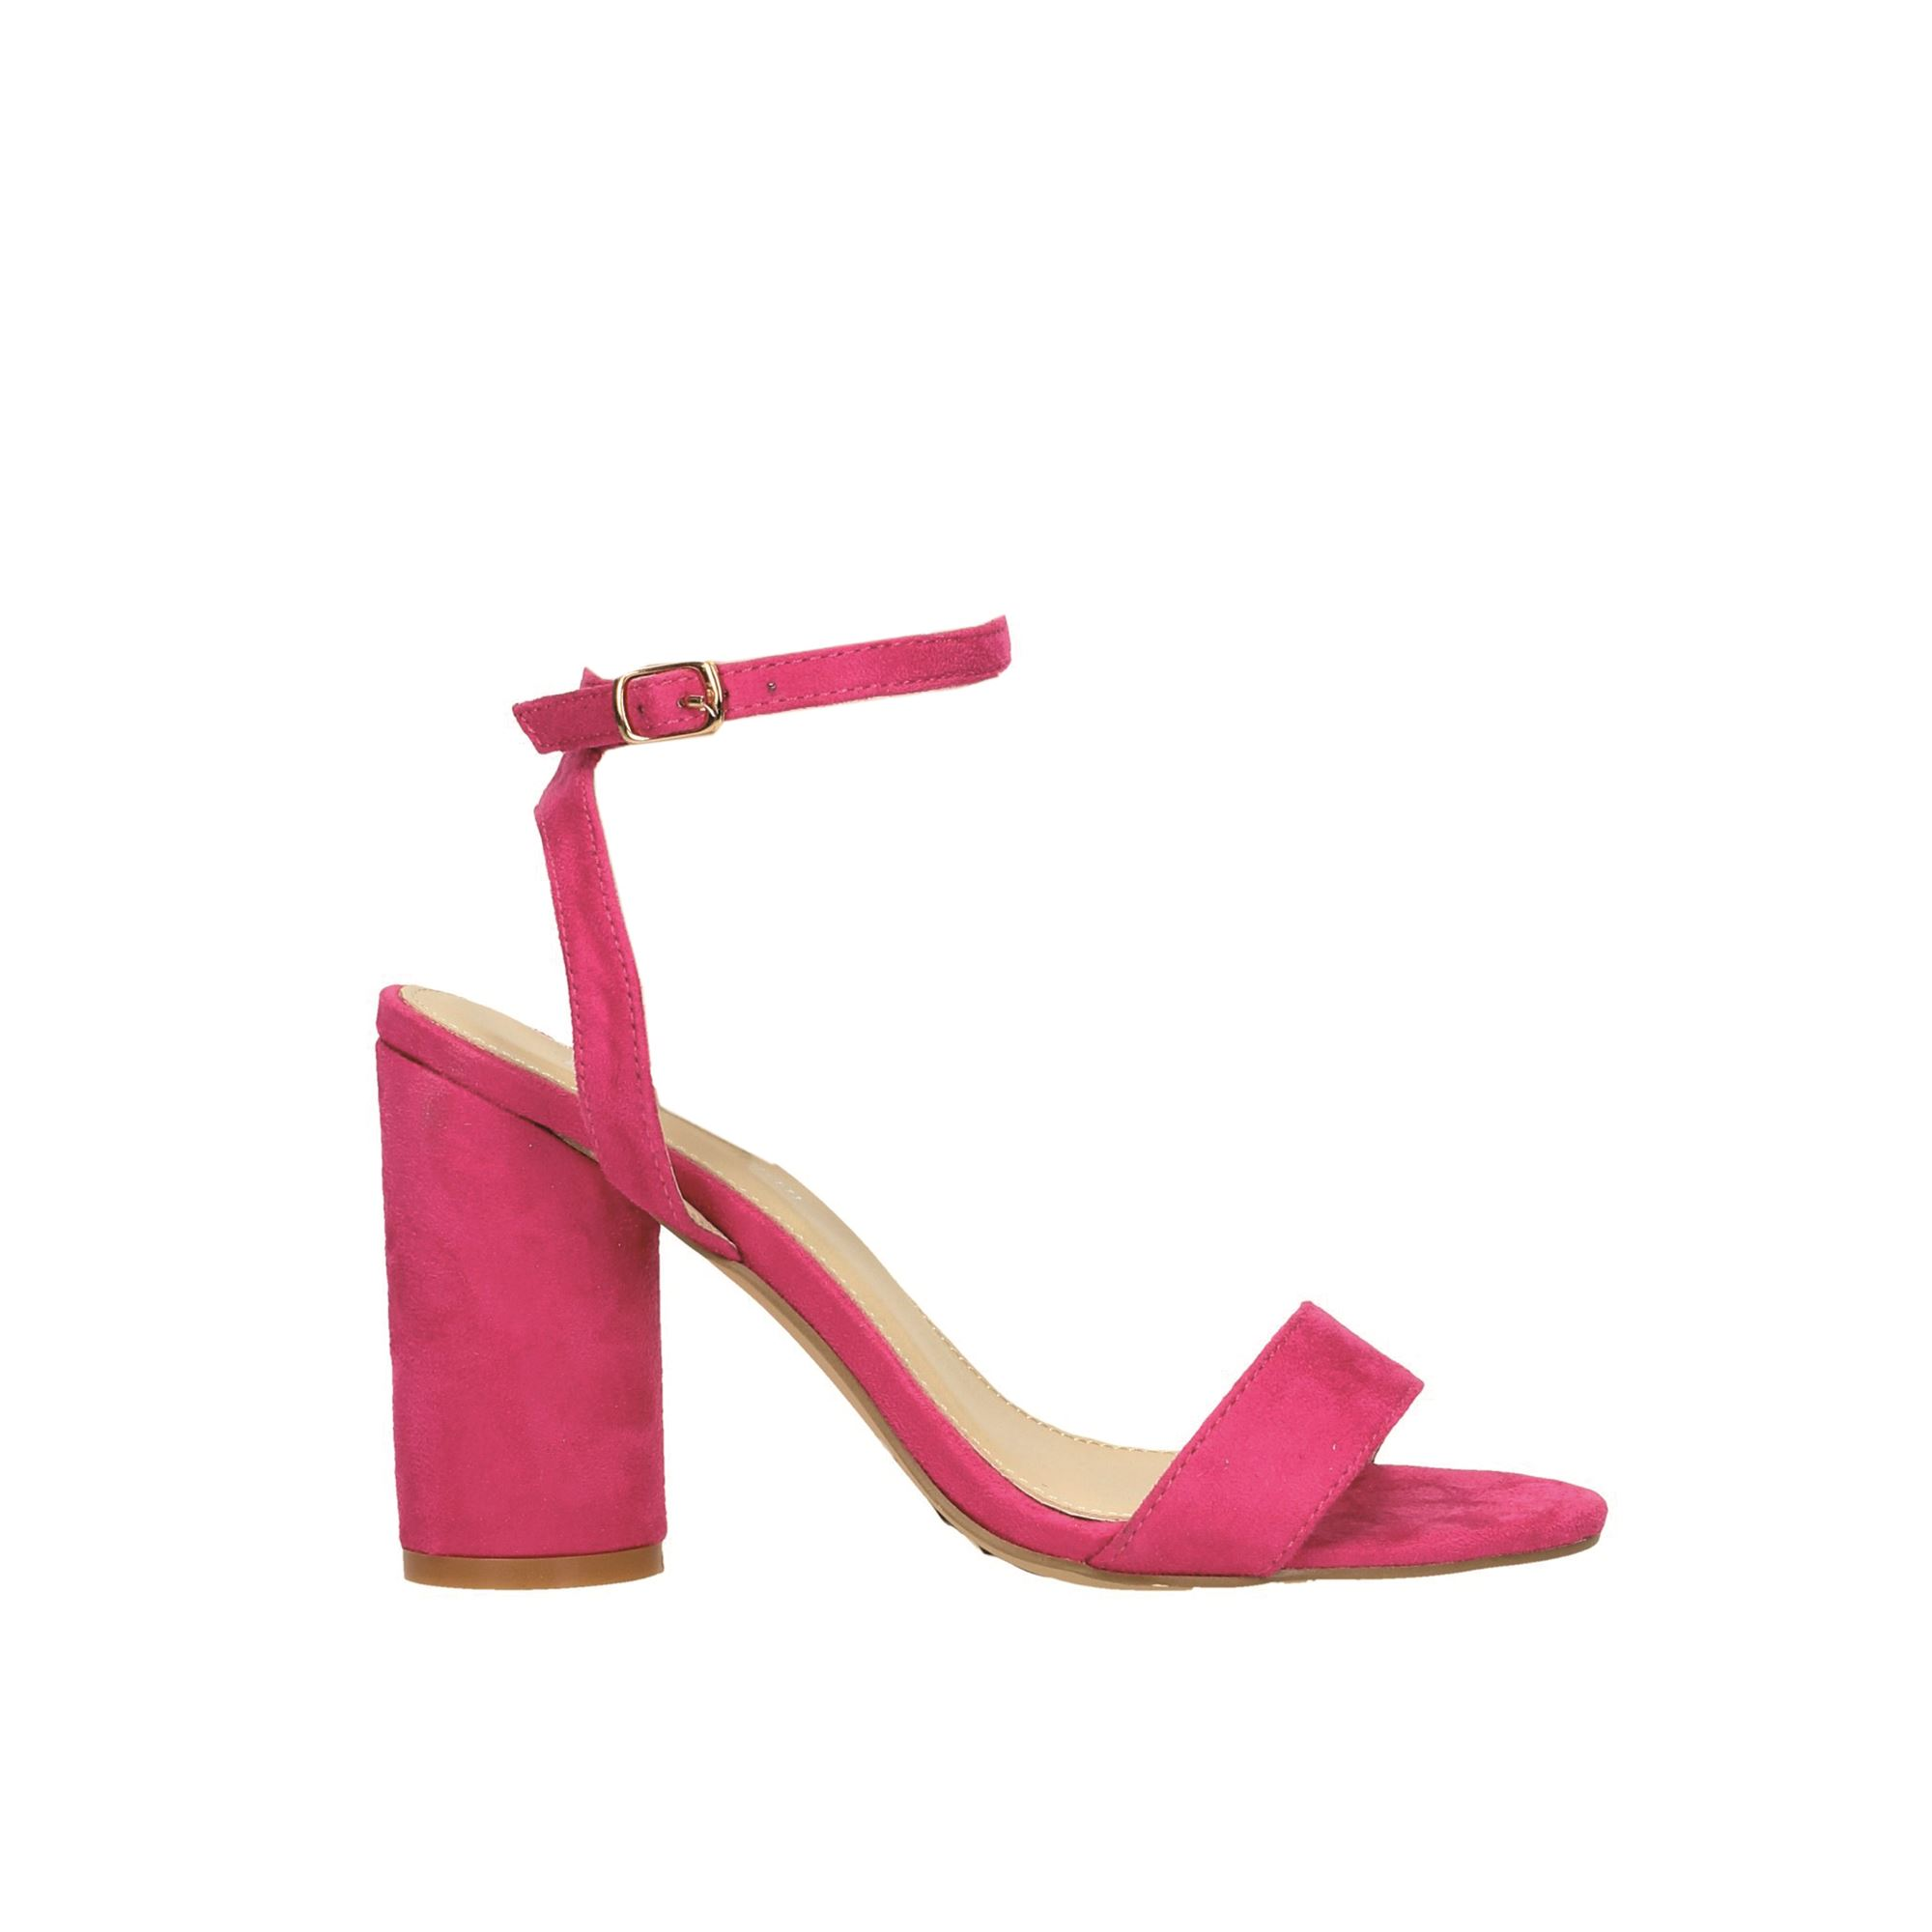 Tata Italia Shoes Woman Sandali Fuxia MGS68B-7A